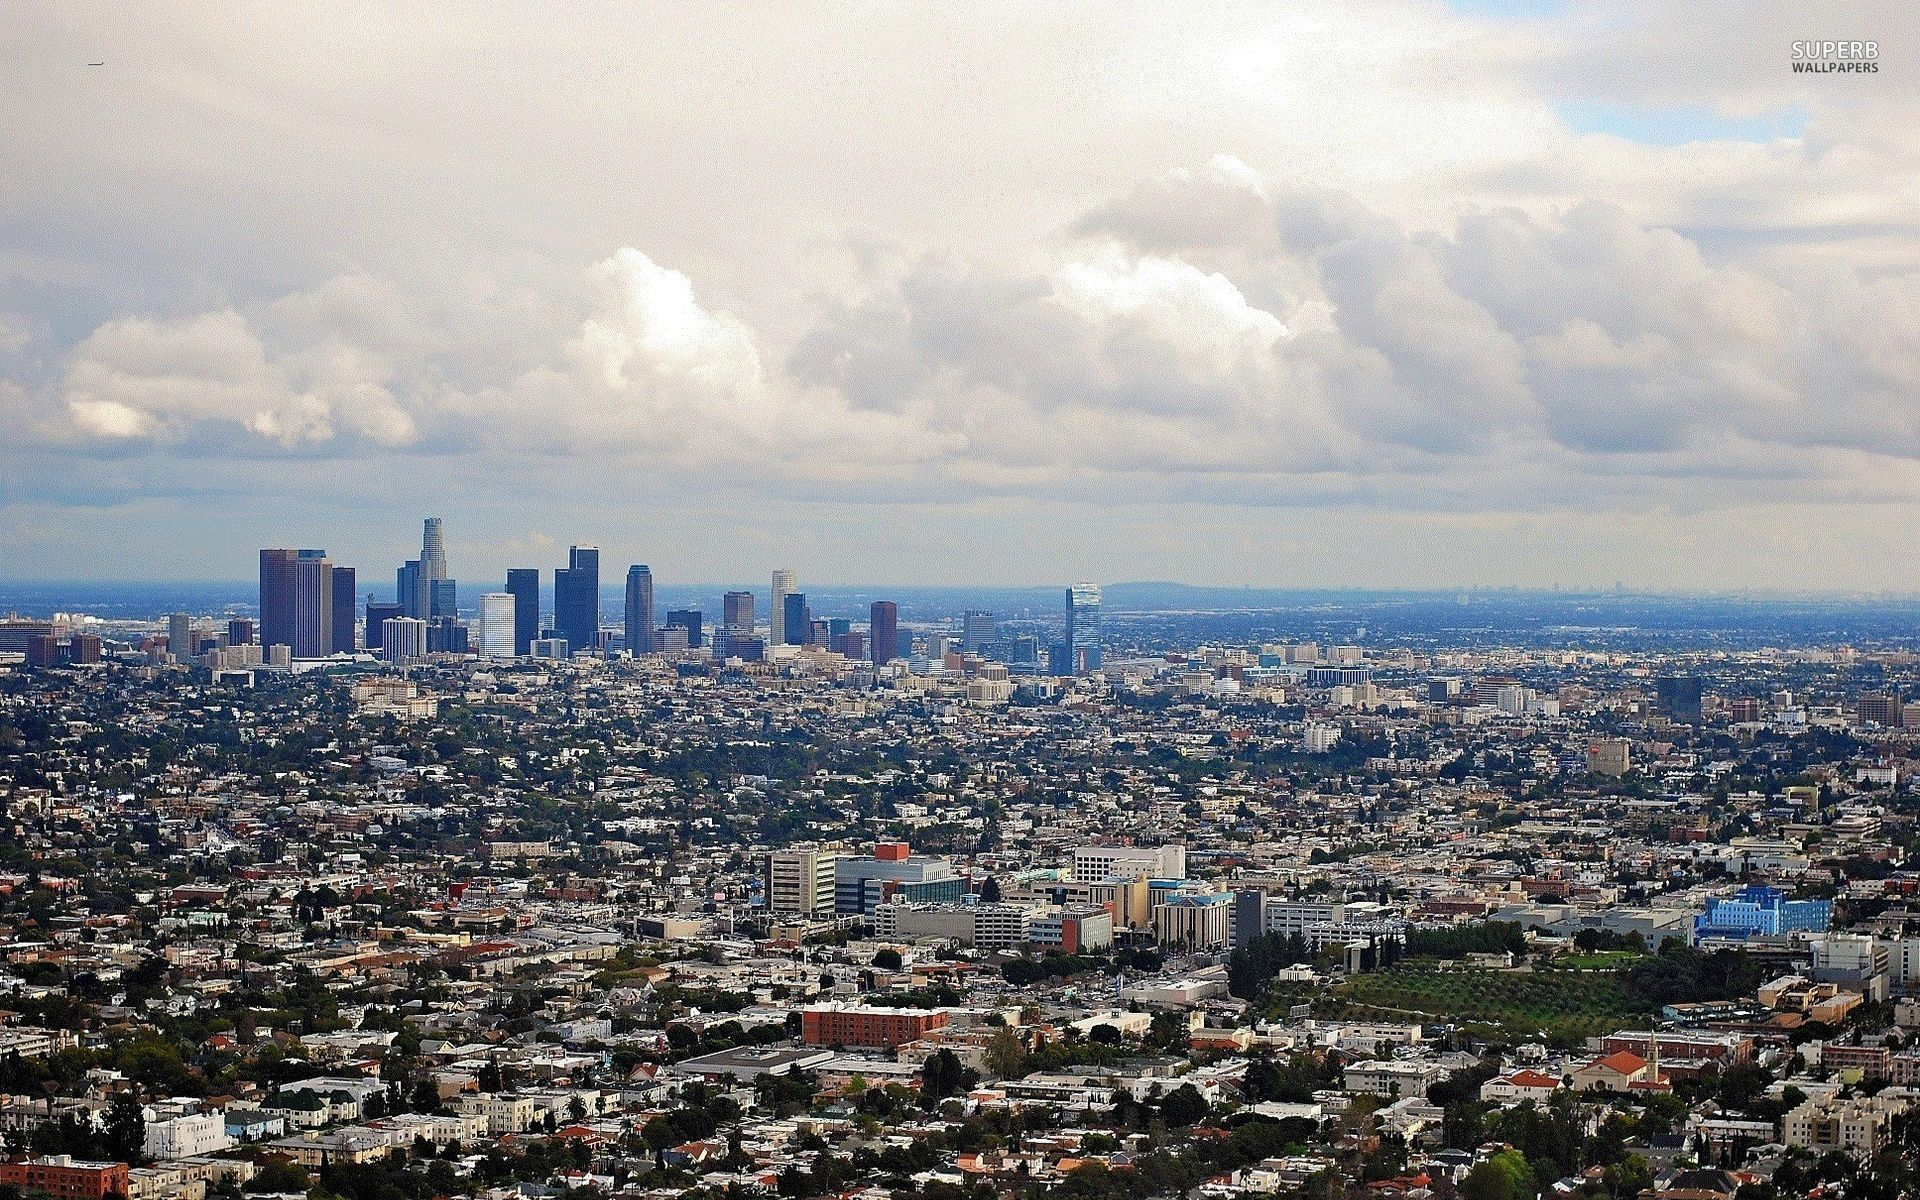 Los Angeles Wallpapers...